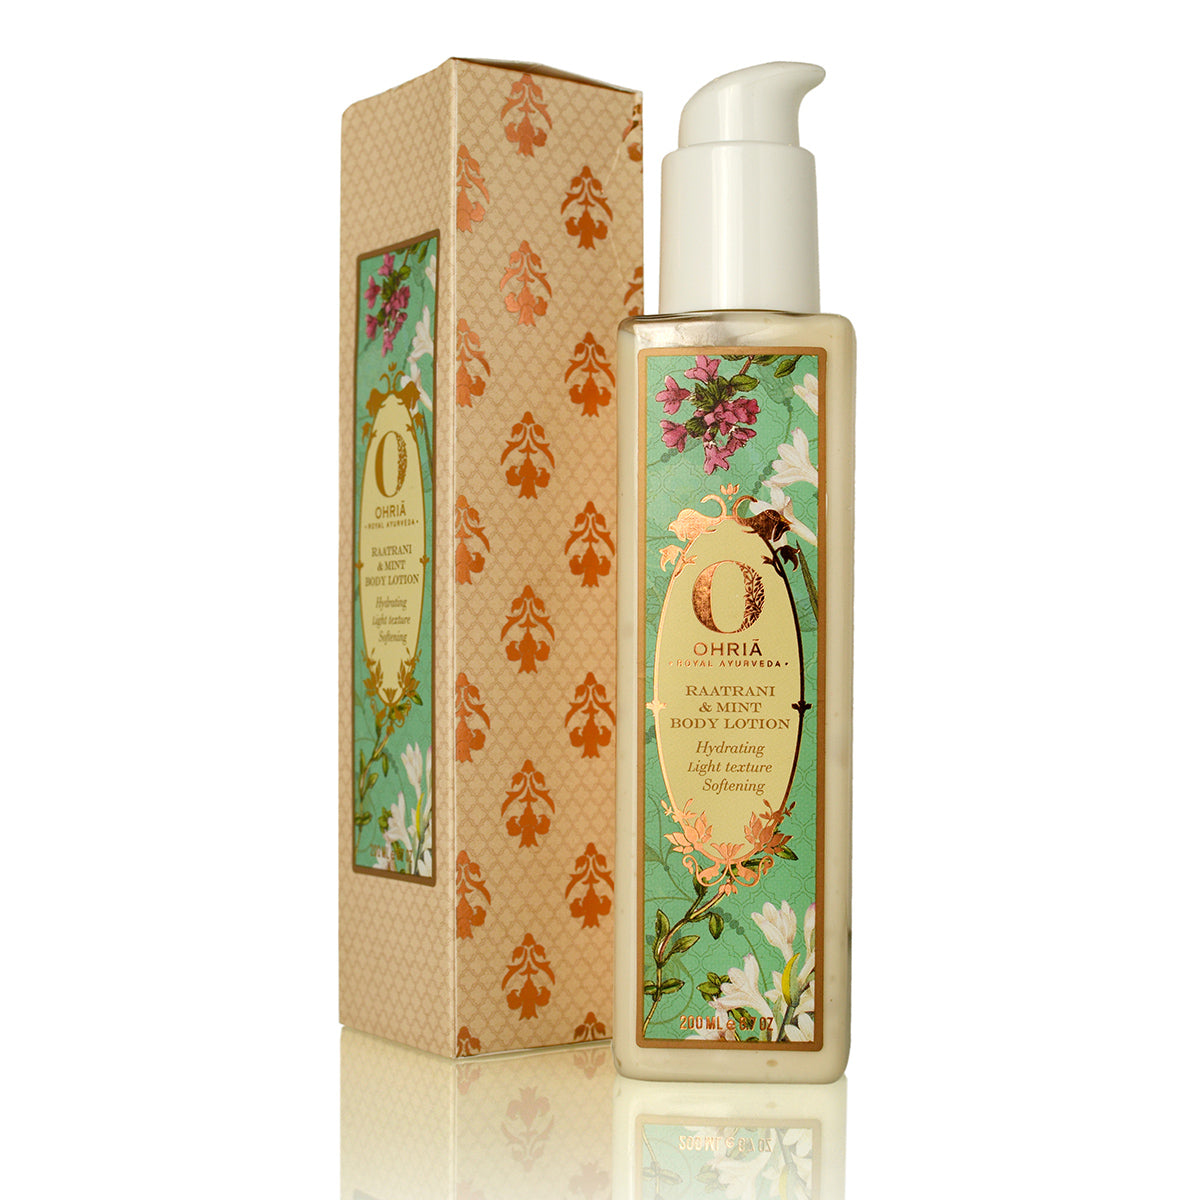 Ohria Ayurveda Raatrani & Mint Body Lotion 200ml